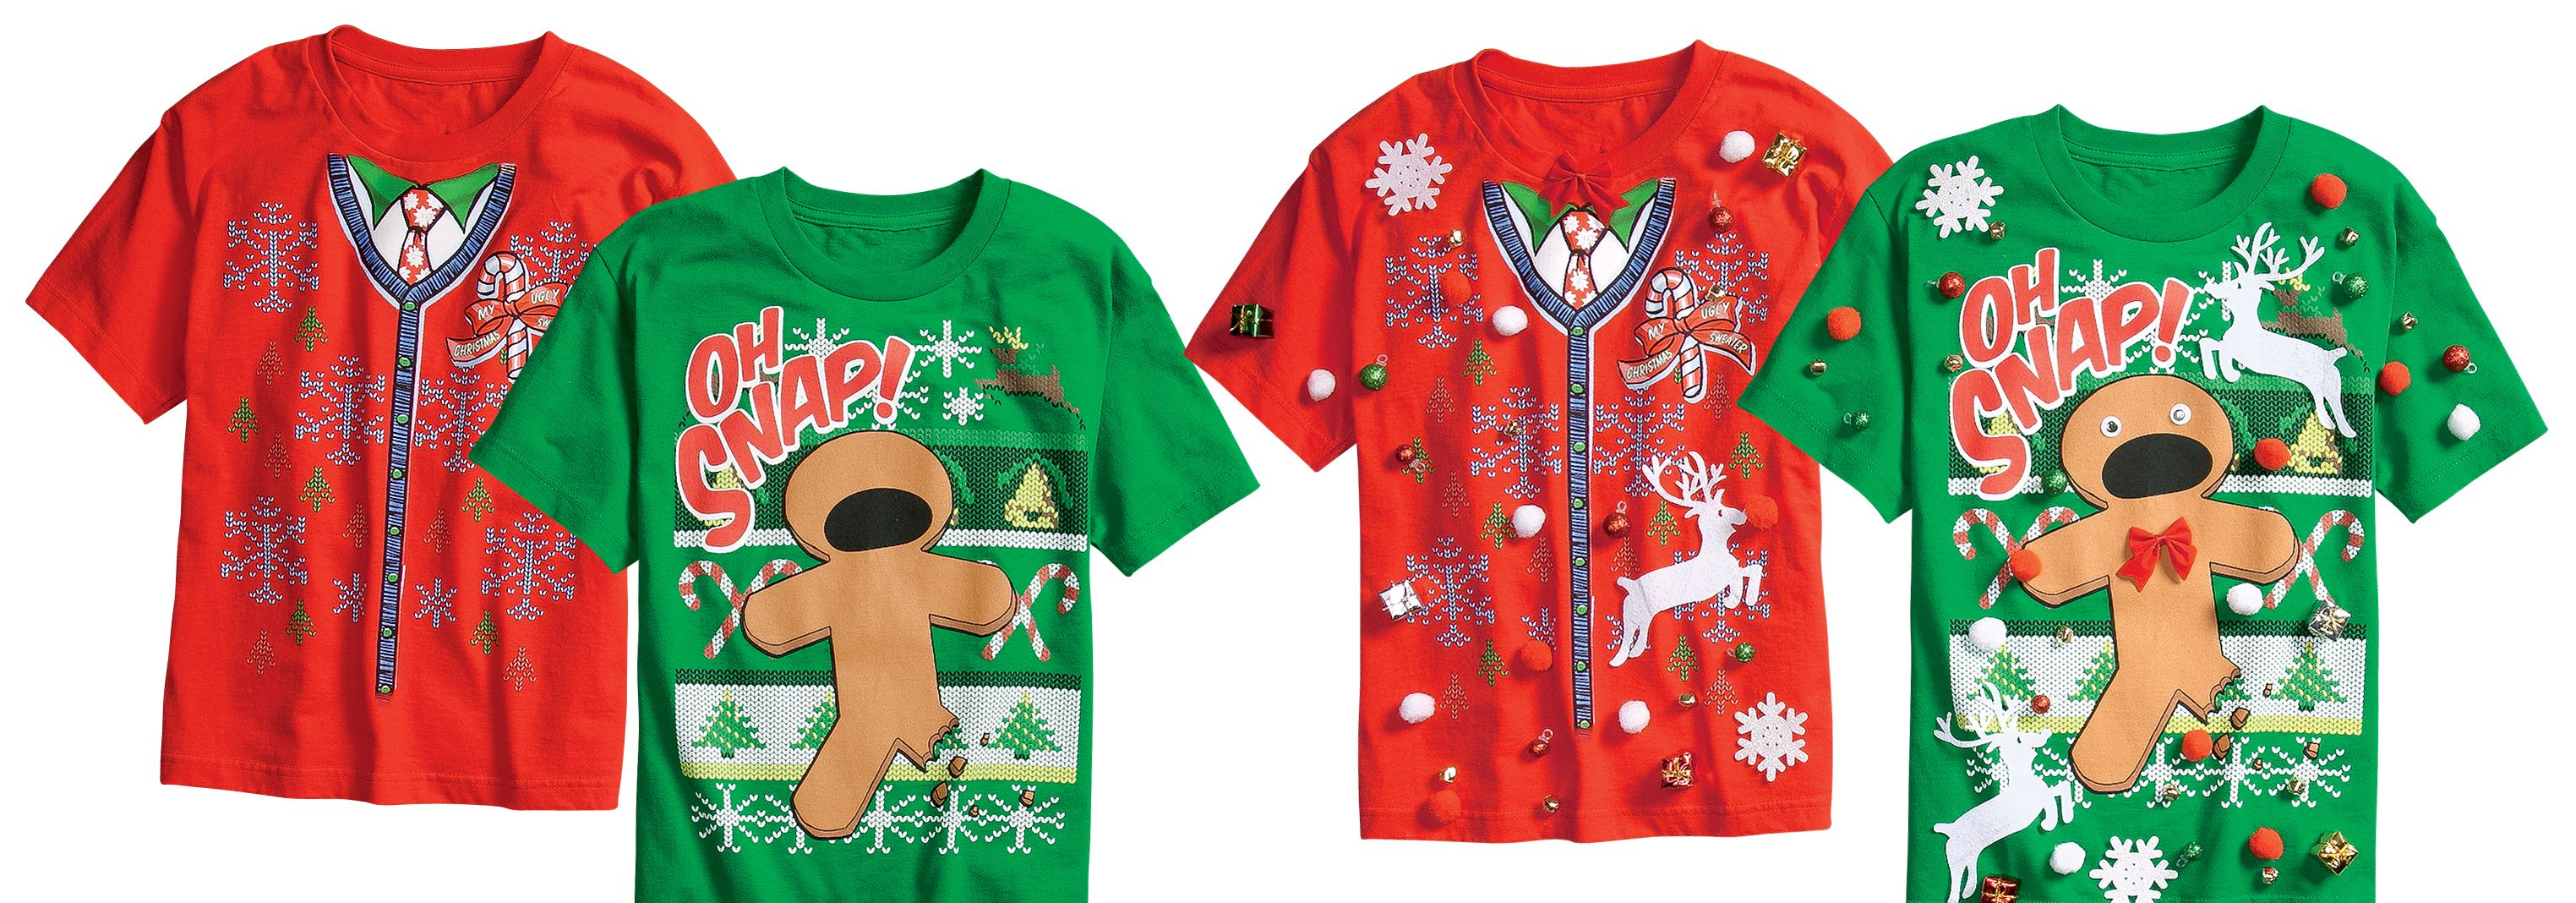 Oh Snap! Holiday tees #shopko | Ugly Christmas Sweaters | Pinterest ...